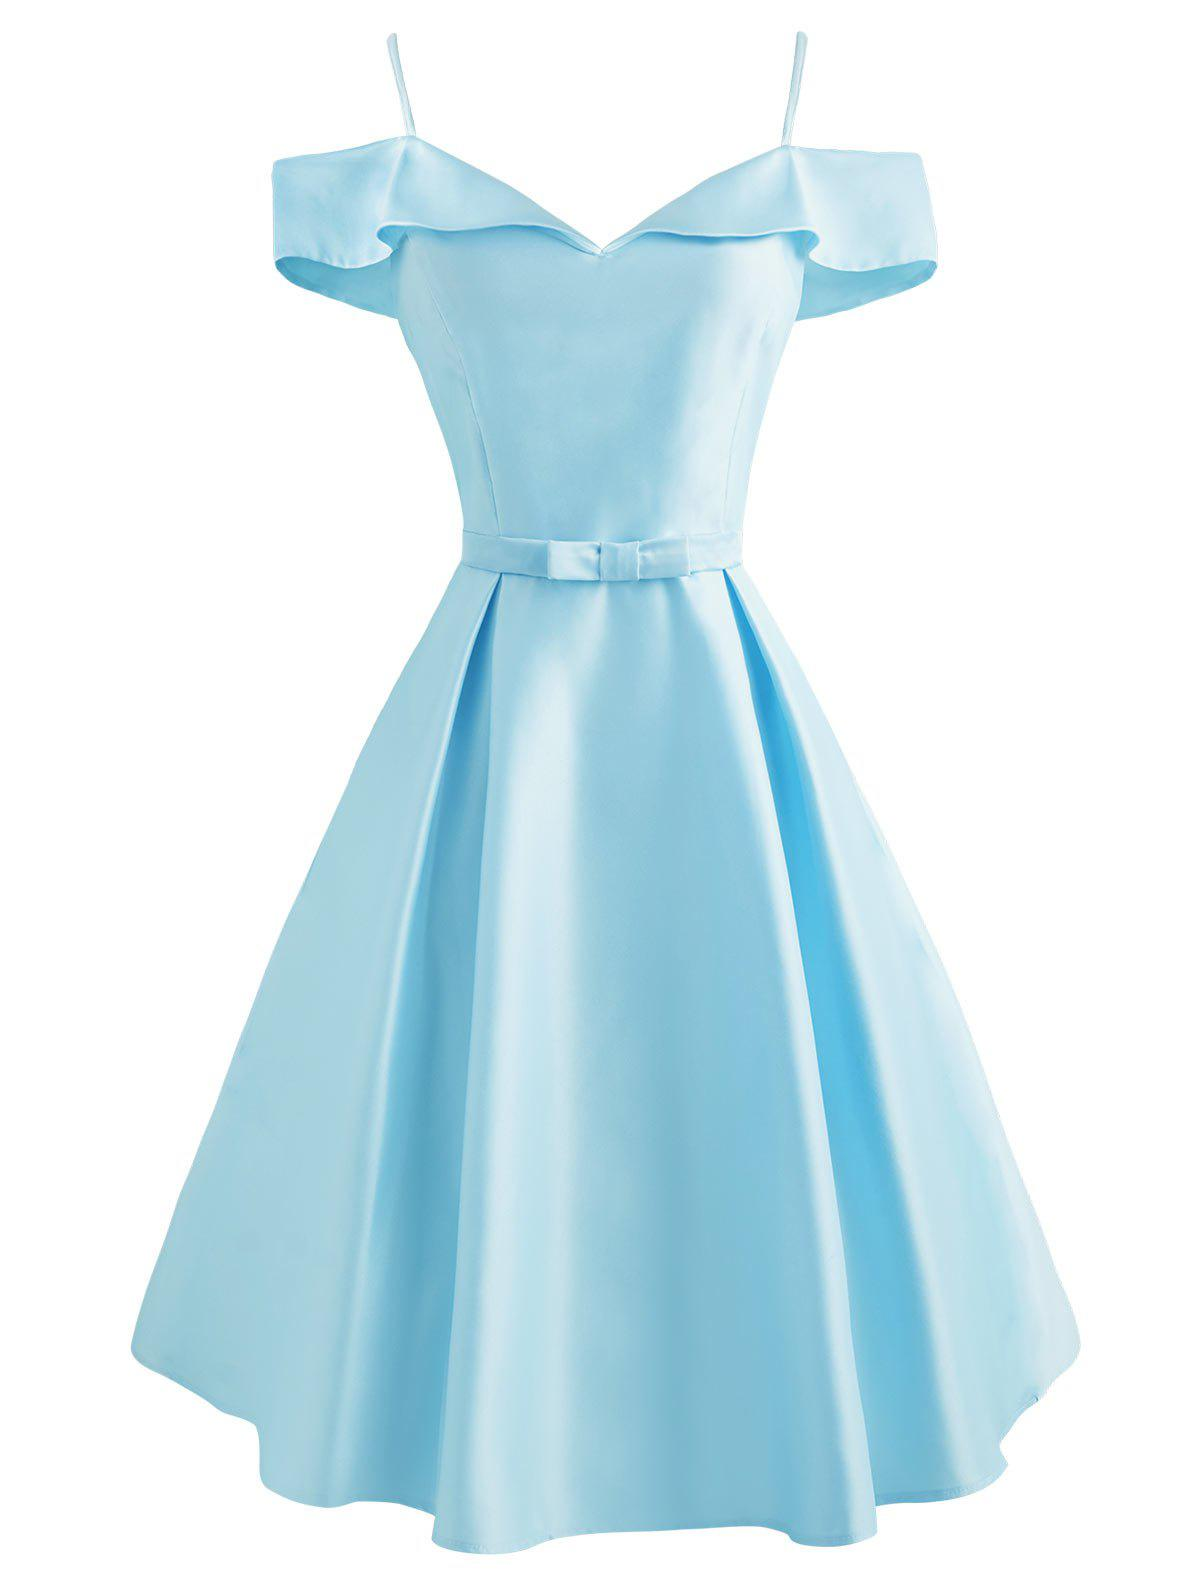 Cami Foldover Belted Cold Shoulder Dress - LIGHT BLUE M